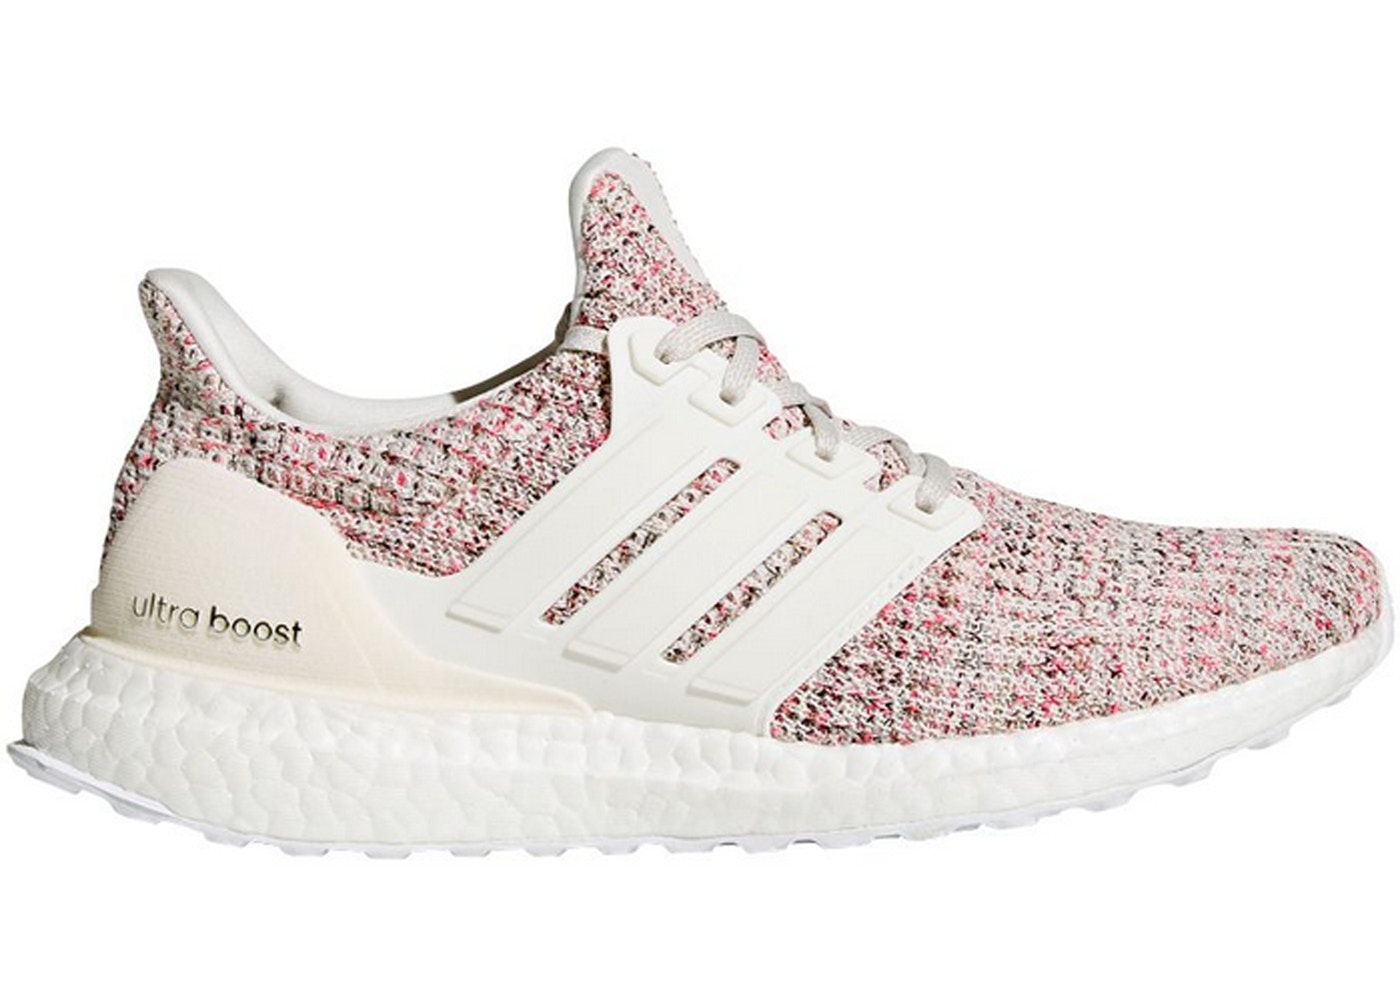 new concept 05109 94ee1 adidas Ultra Boost Shoes - New Lowest Asks